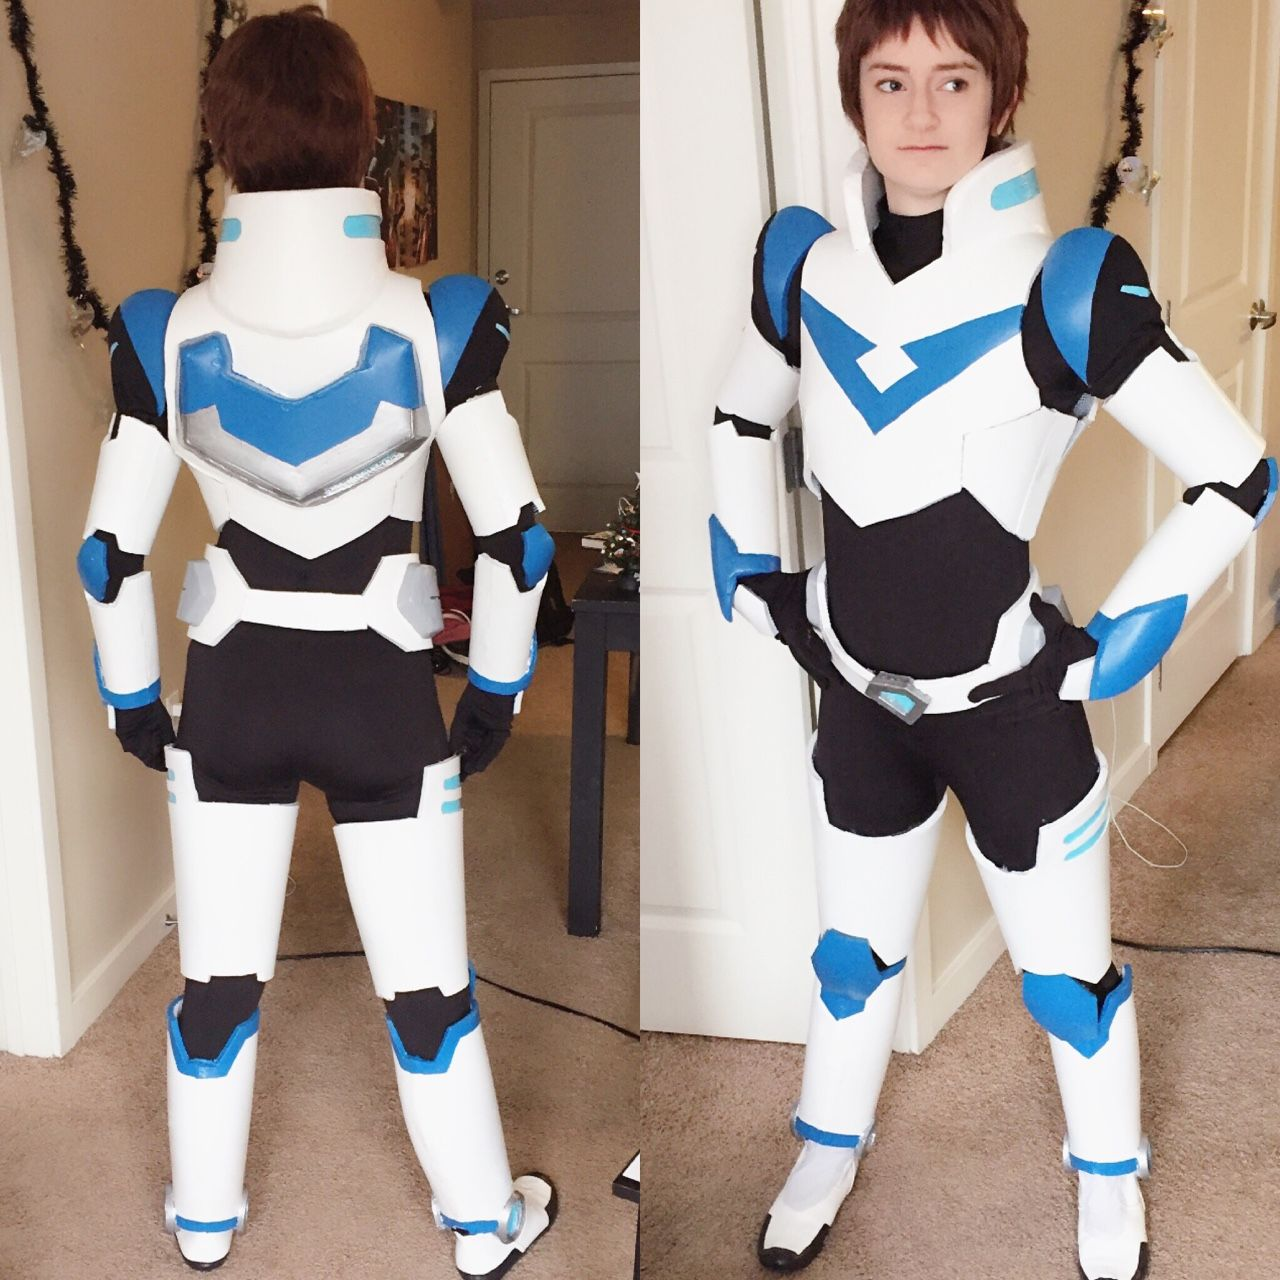 Full Paladin Lance Cosplay Test This Cosplay Is Really Hard To Get